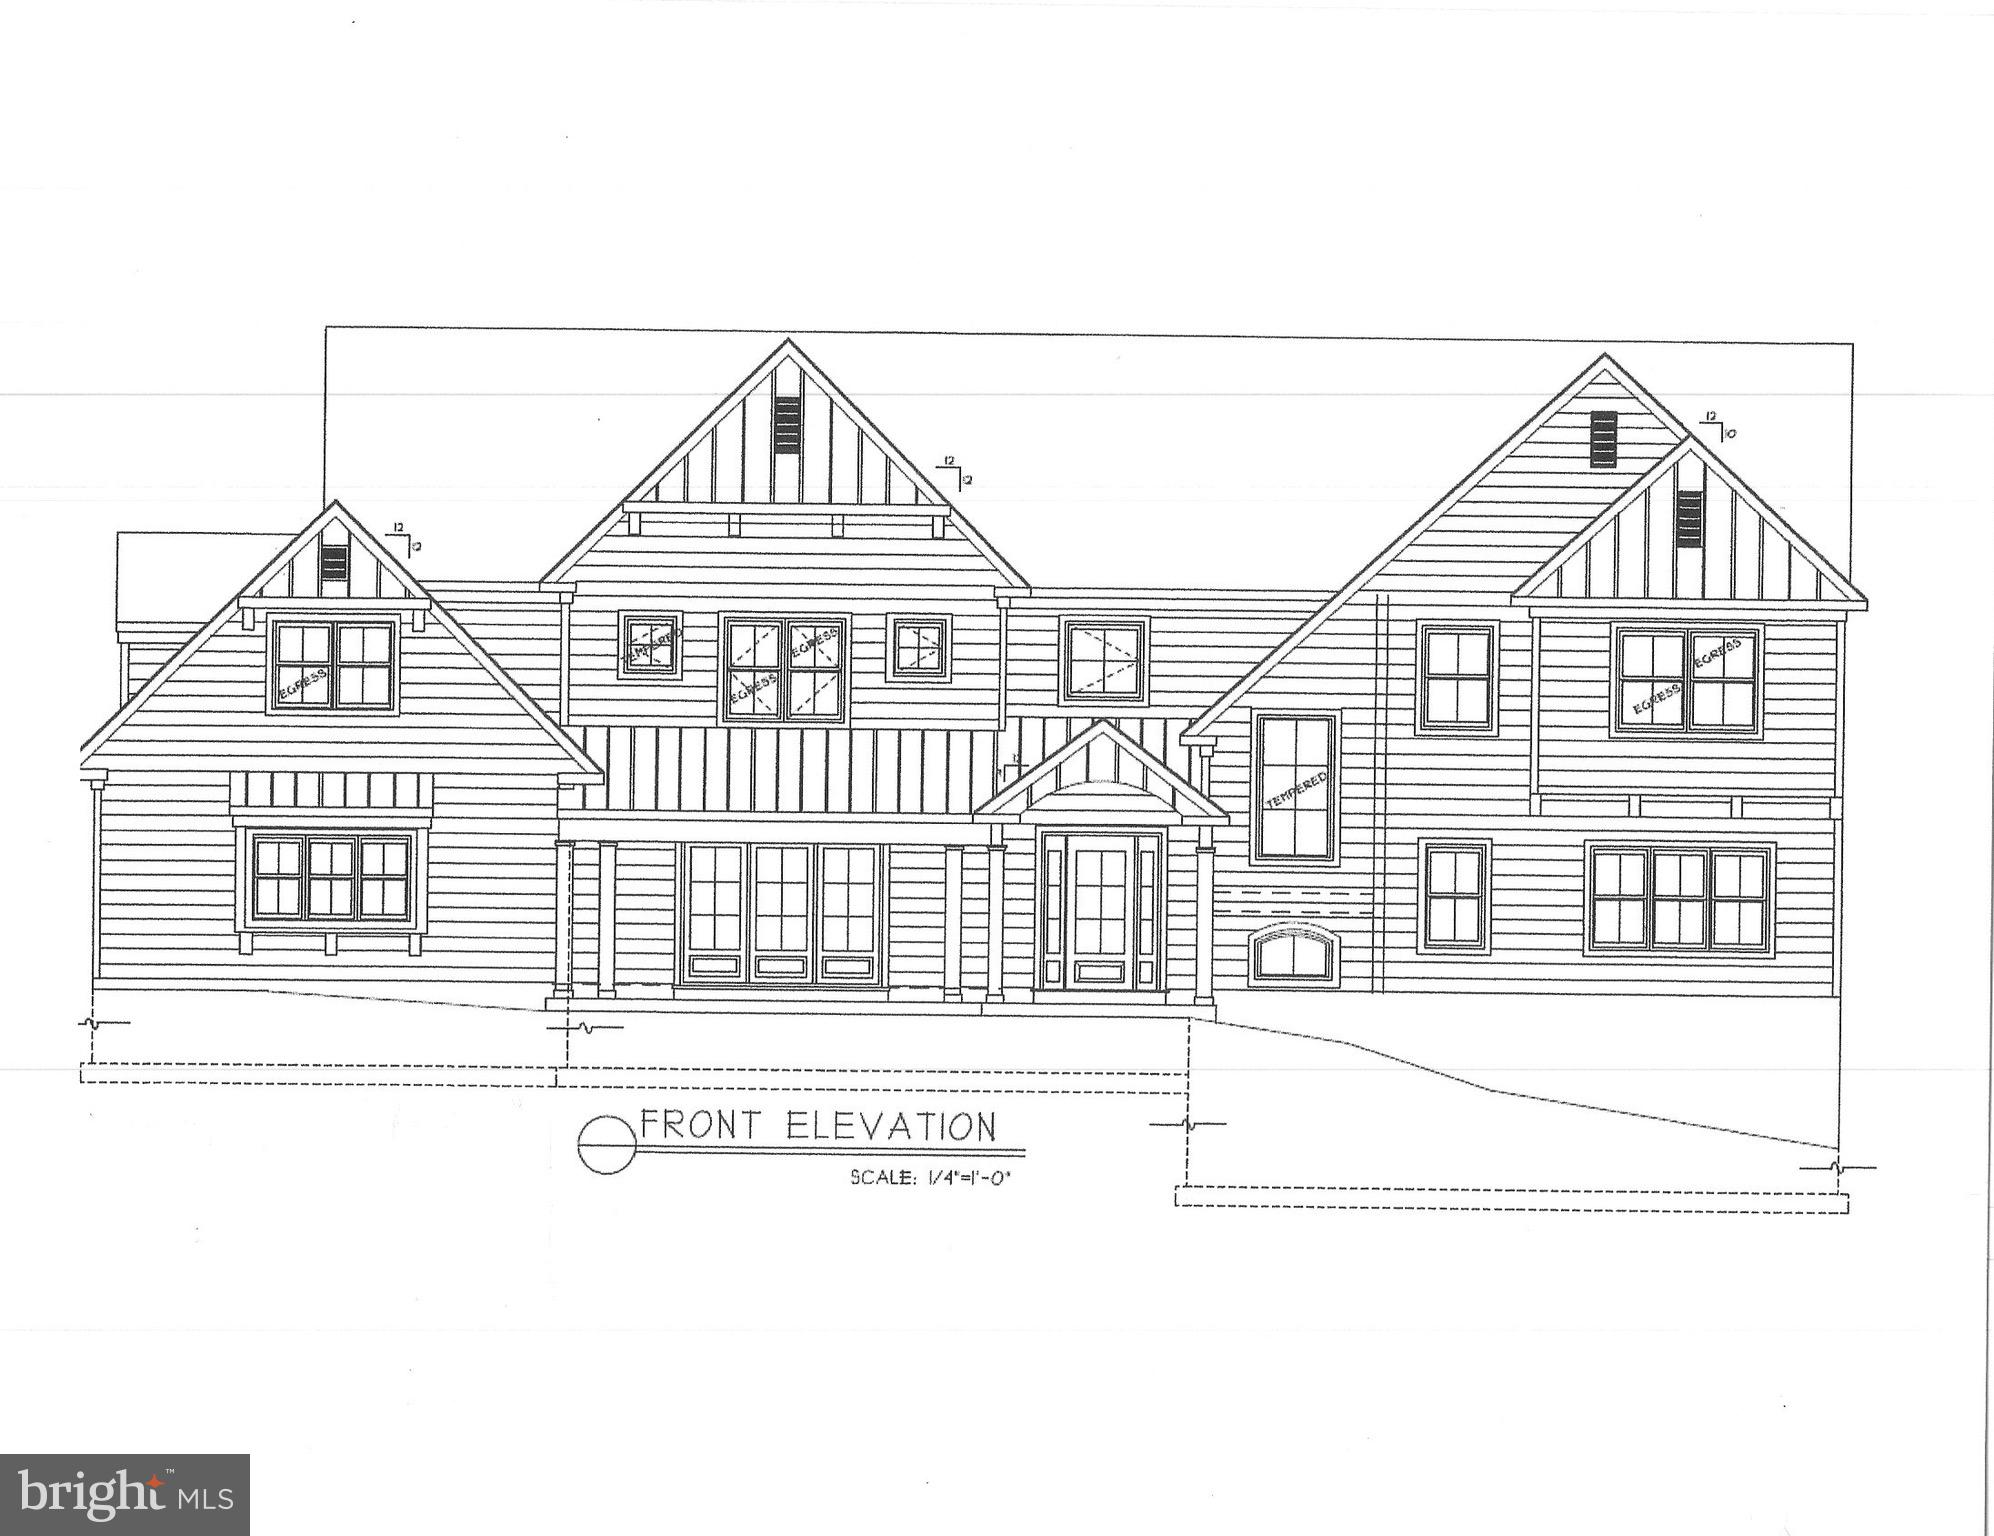 Incredible opportunity to purchase a truly exquisite custom masterpiece in a very desirable location.  This new construction home, designed by R. A Hoffman Architects, Inc and to be built by Top Notch General Contracting, offers five bedrooms, four full and two half bathroom, 4,619 square feet of luxurious living space, and a three-car side entry garage on a gorgeous 1 acre lot in Easttown Township. It's the perfect blend of quality construction, functional floorplan, high-end finishes, and location. Interior features include site finished white oak hardwood floors throughout the main level and upstairs hallway, custom built-in cubbies in mudroom, 2-zone high efficiency HVAC system, extensive custom moldings and recessed lighting throughout, 2nd floor laundry, impressive two-story entrance foyer, wet bar with beverage center, wine storage,  and Anderson 200 series wood windows. The gourmet kitchen has 48 inch custom painted maple cabinetry,  stainless steel professional grade appliances, massive center island with overhang, tile backsplash, and quartz countertops. The primary bedroom suite has huge his/her closets with custom storage systems and spa like bathroom with furniture grade double bowl vanity, stand alone soaking tub, large shower with frameless glass enclosure, and Carrera marble throughout. Exterior features include James Hardie lap siding, bluestone walkway to front door and rear doors, bluestone patio off breakfast and dining rooms, and a large rear yard. This home is ideally located on a cul-de-sac street close to all major commuter routes, shopping, dining, Episcopal Academy, Aronimink and Waynesborough Country Clubs, and is part of the top rated Tredyffrin Easttown School District.  One of the owners is a licensed PA broker. Taxes displayed are for old home on the property and will be re-assessed after settlement.  Expected completion summer 2022.  Pictures are from recently built homes by same builder.